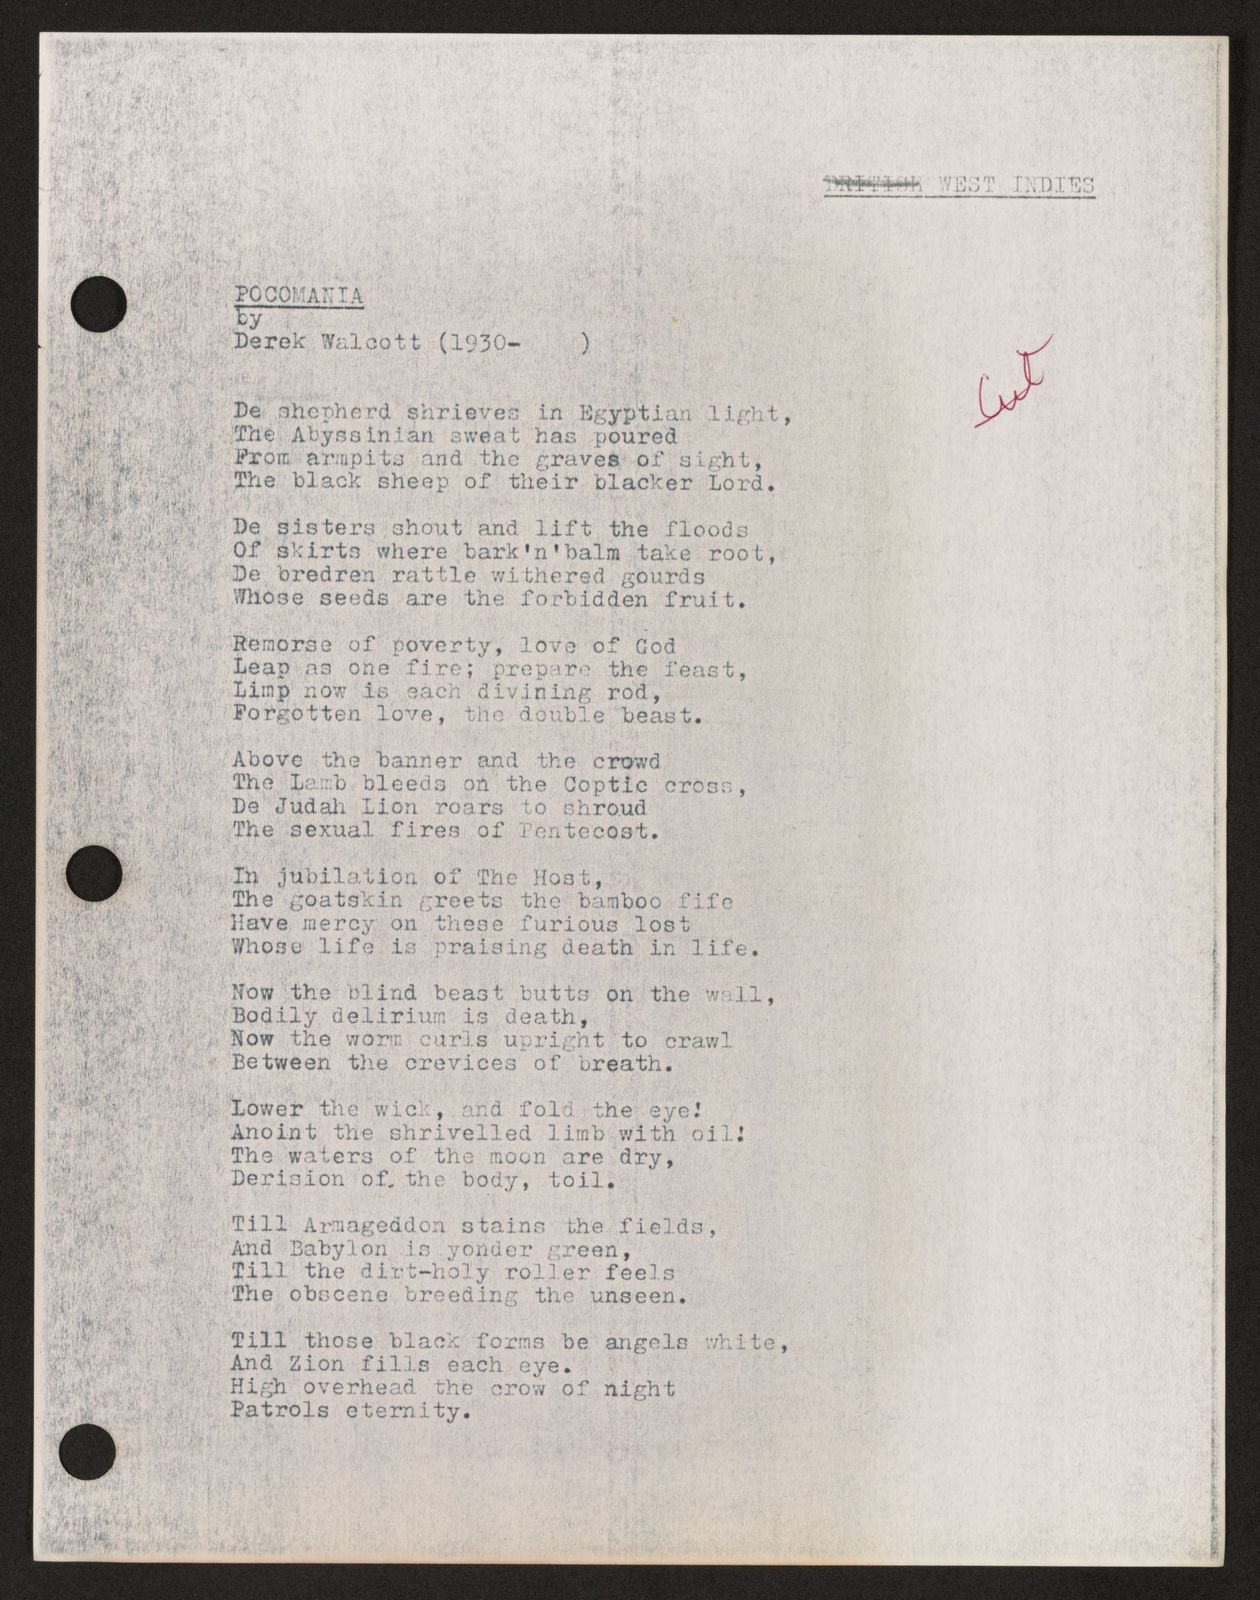 Alan Lomax Collection, Manuscripts, Black Identity Project, 1968-1970, Les Ameriques Noires, Roger Bastide